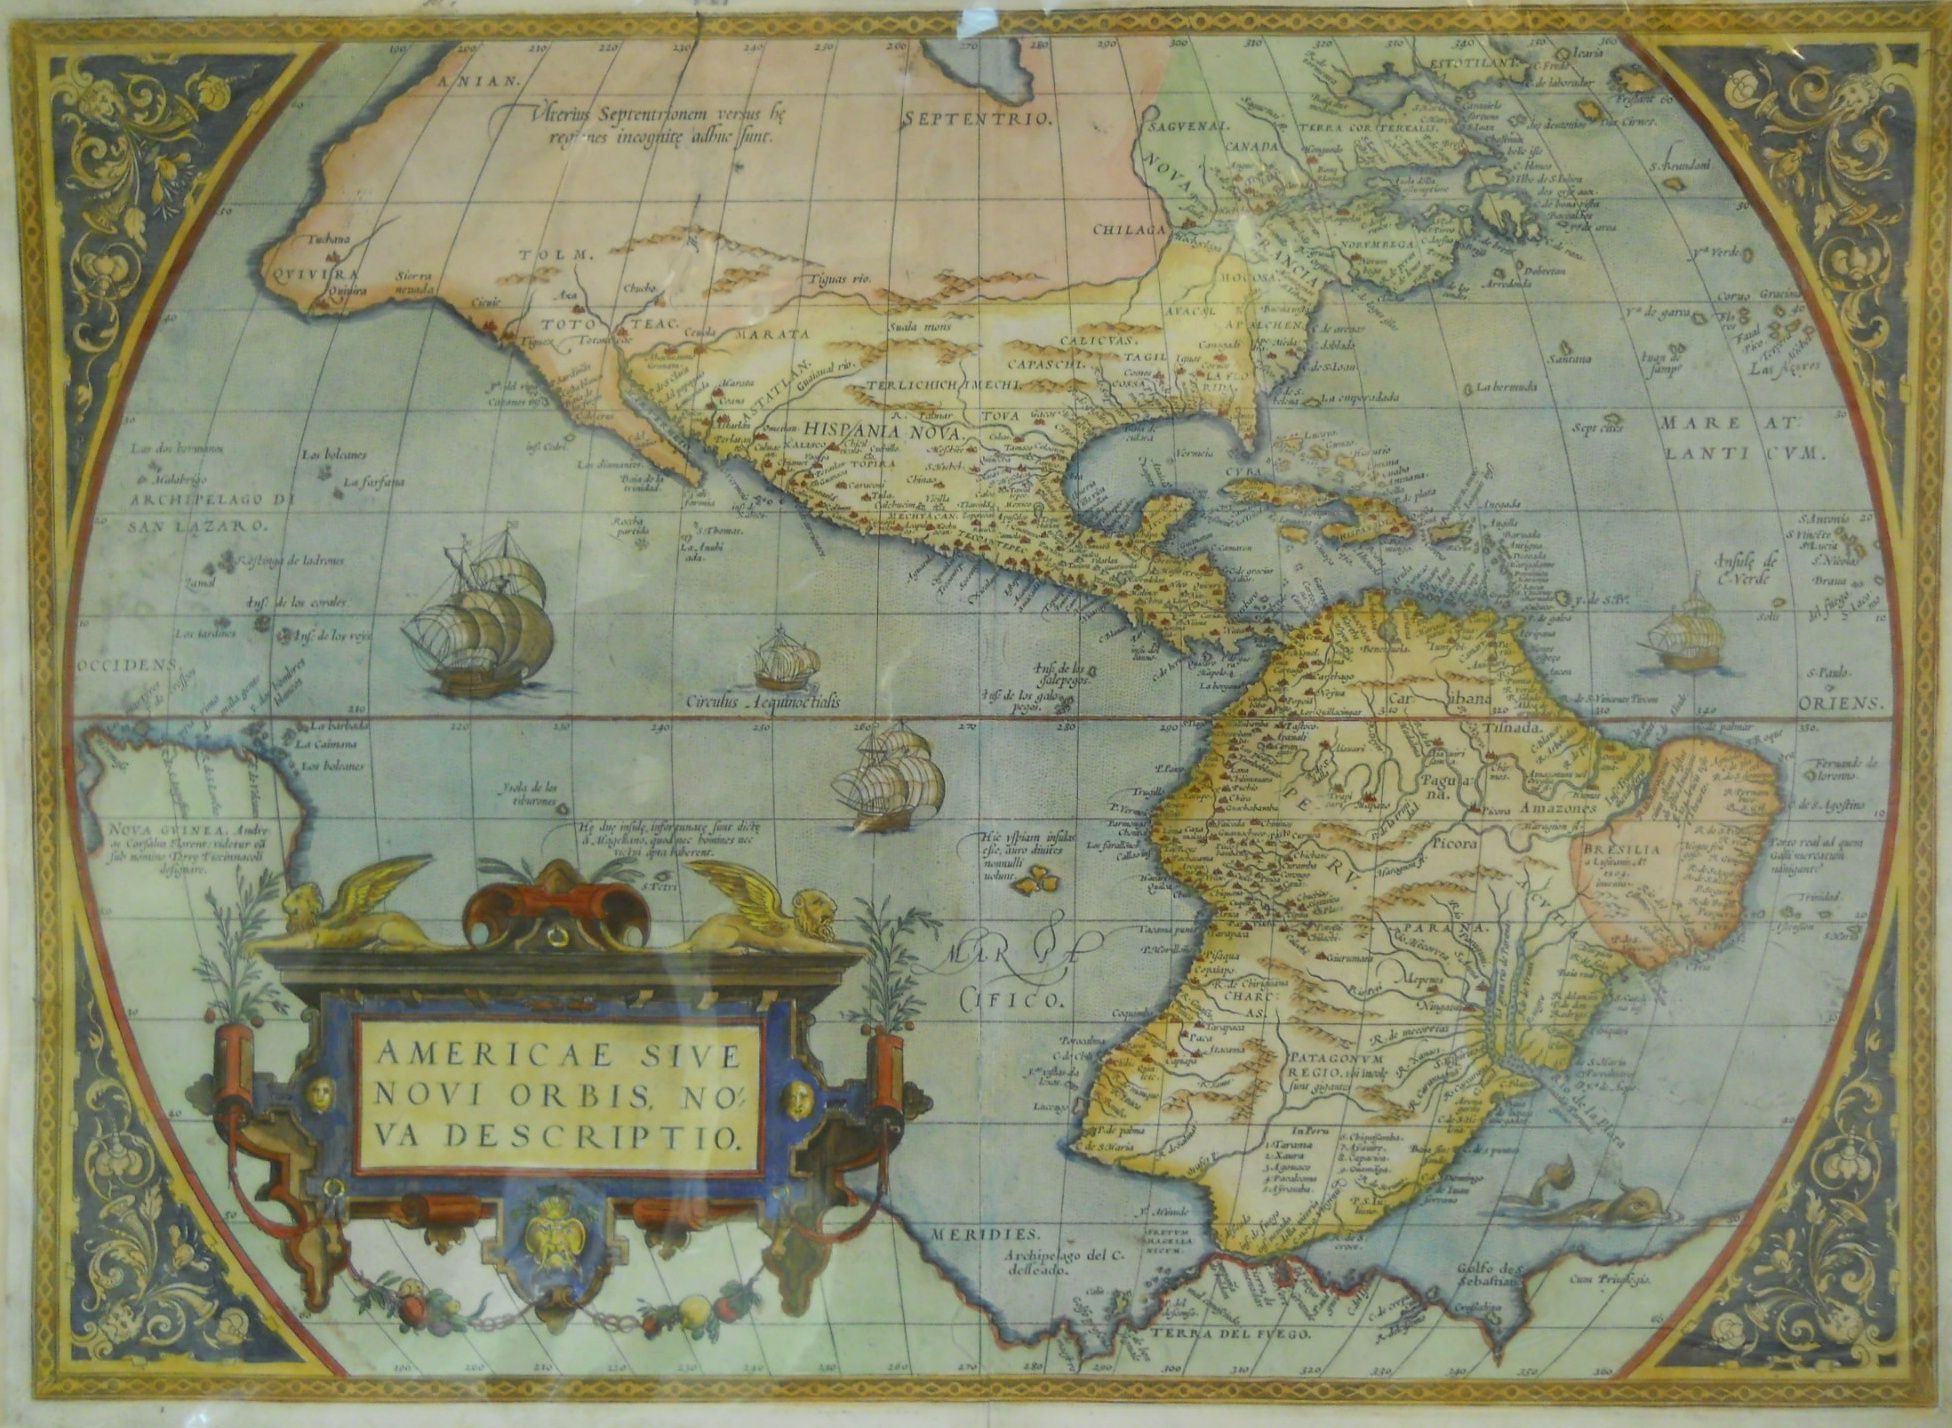 North America Map Outline Printable%0A This beautiful and influential map by Abraham Ortelius is one of the great  maps of the